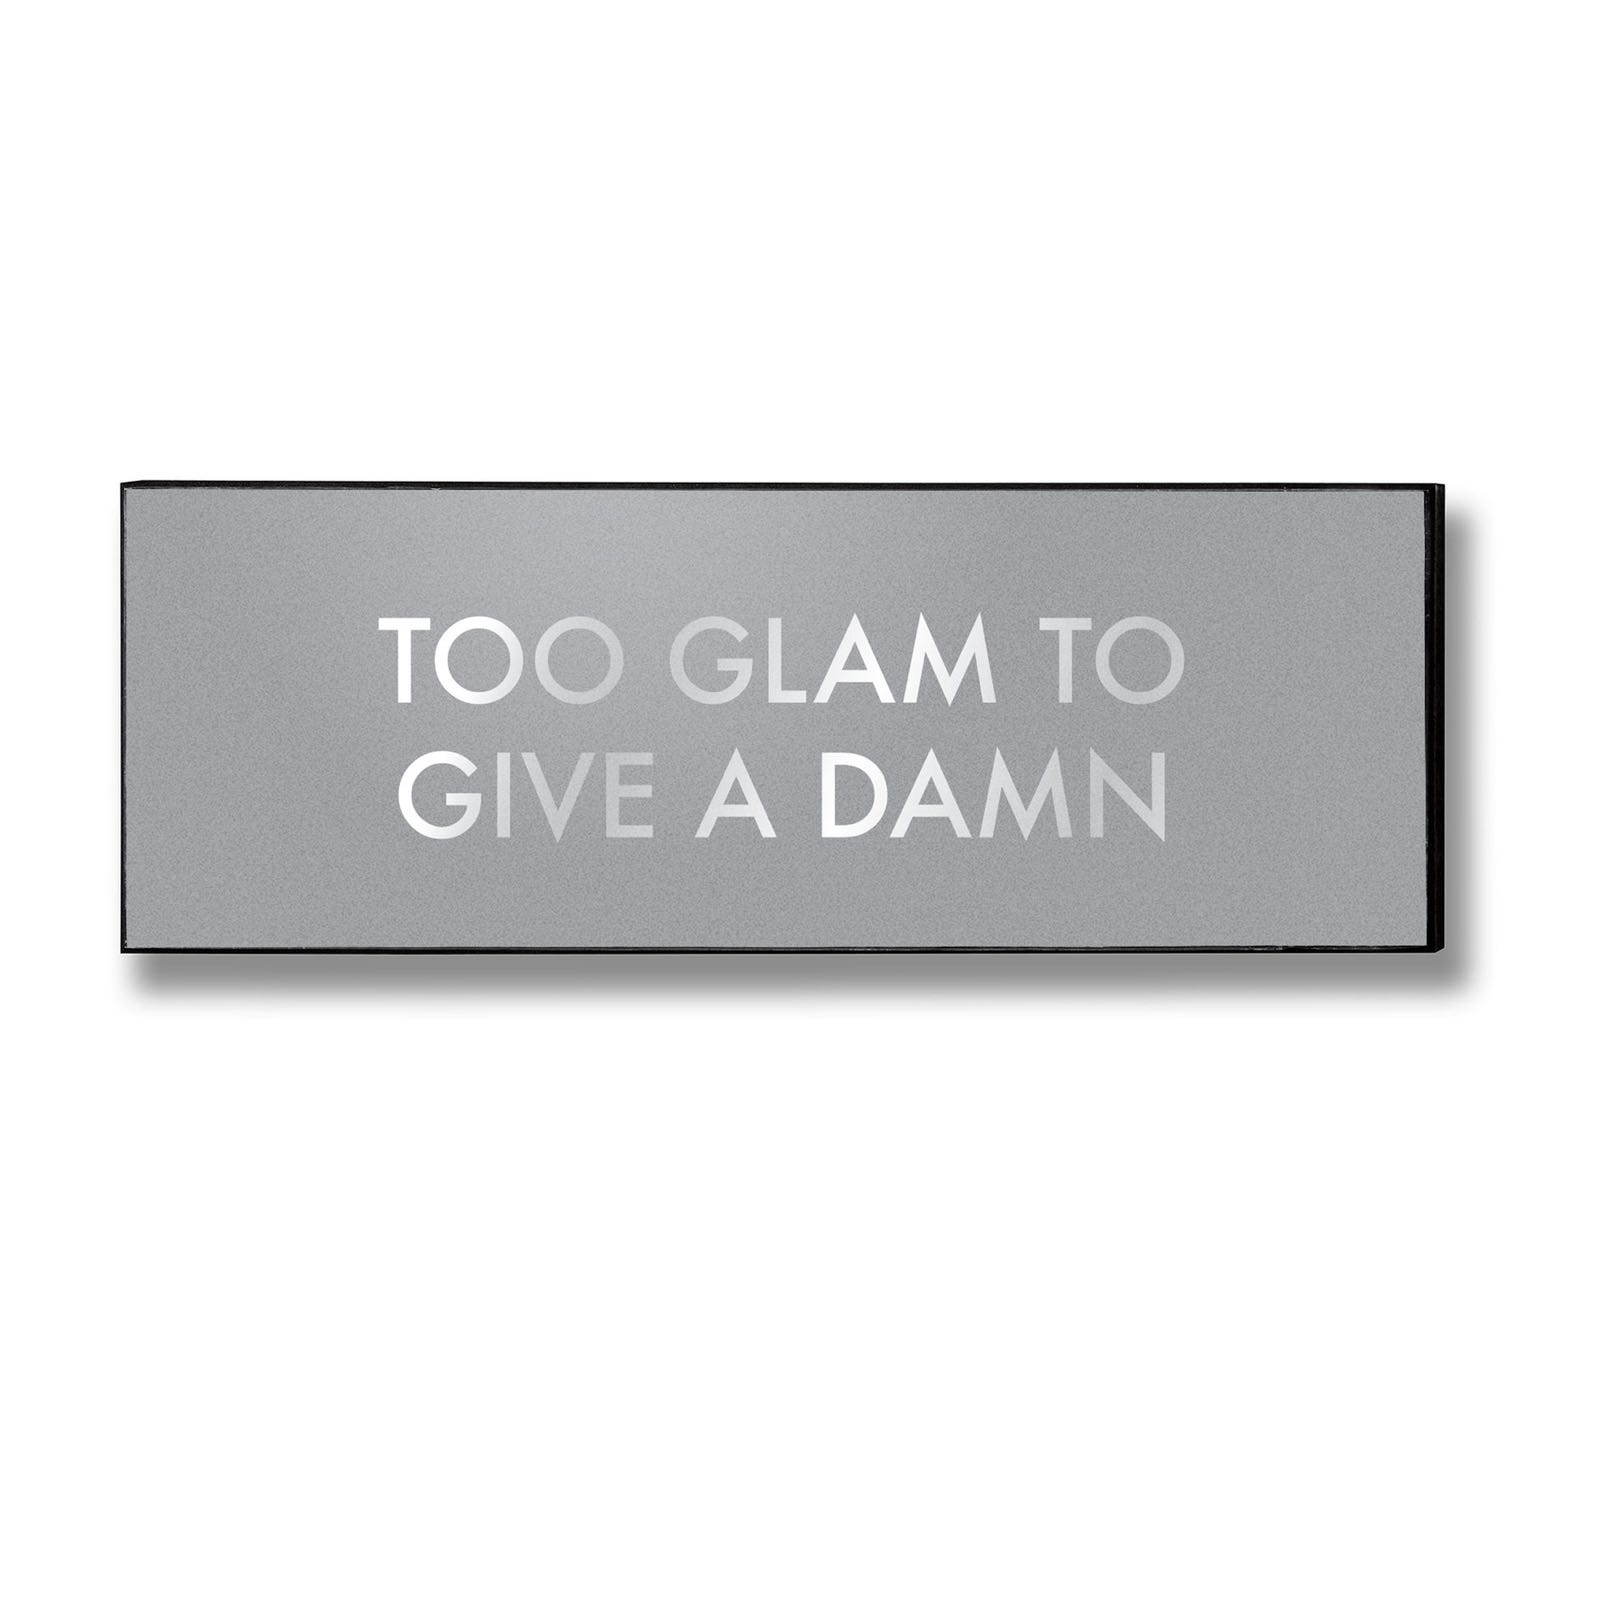 To glam to give a damn wall plaque